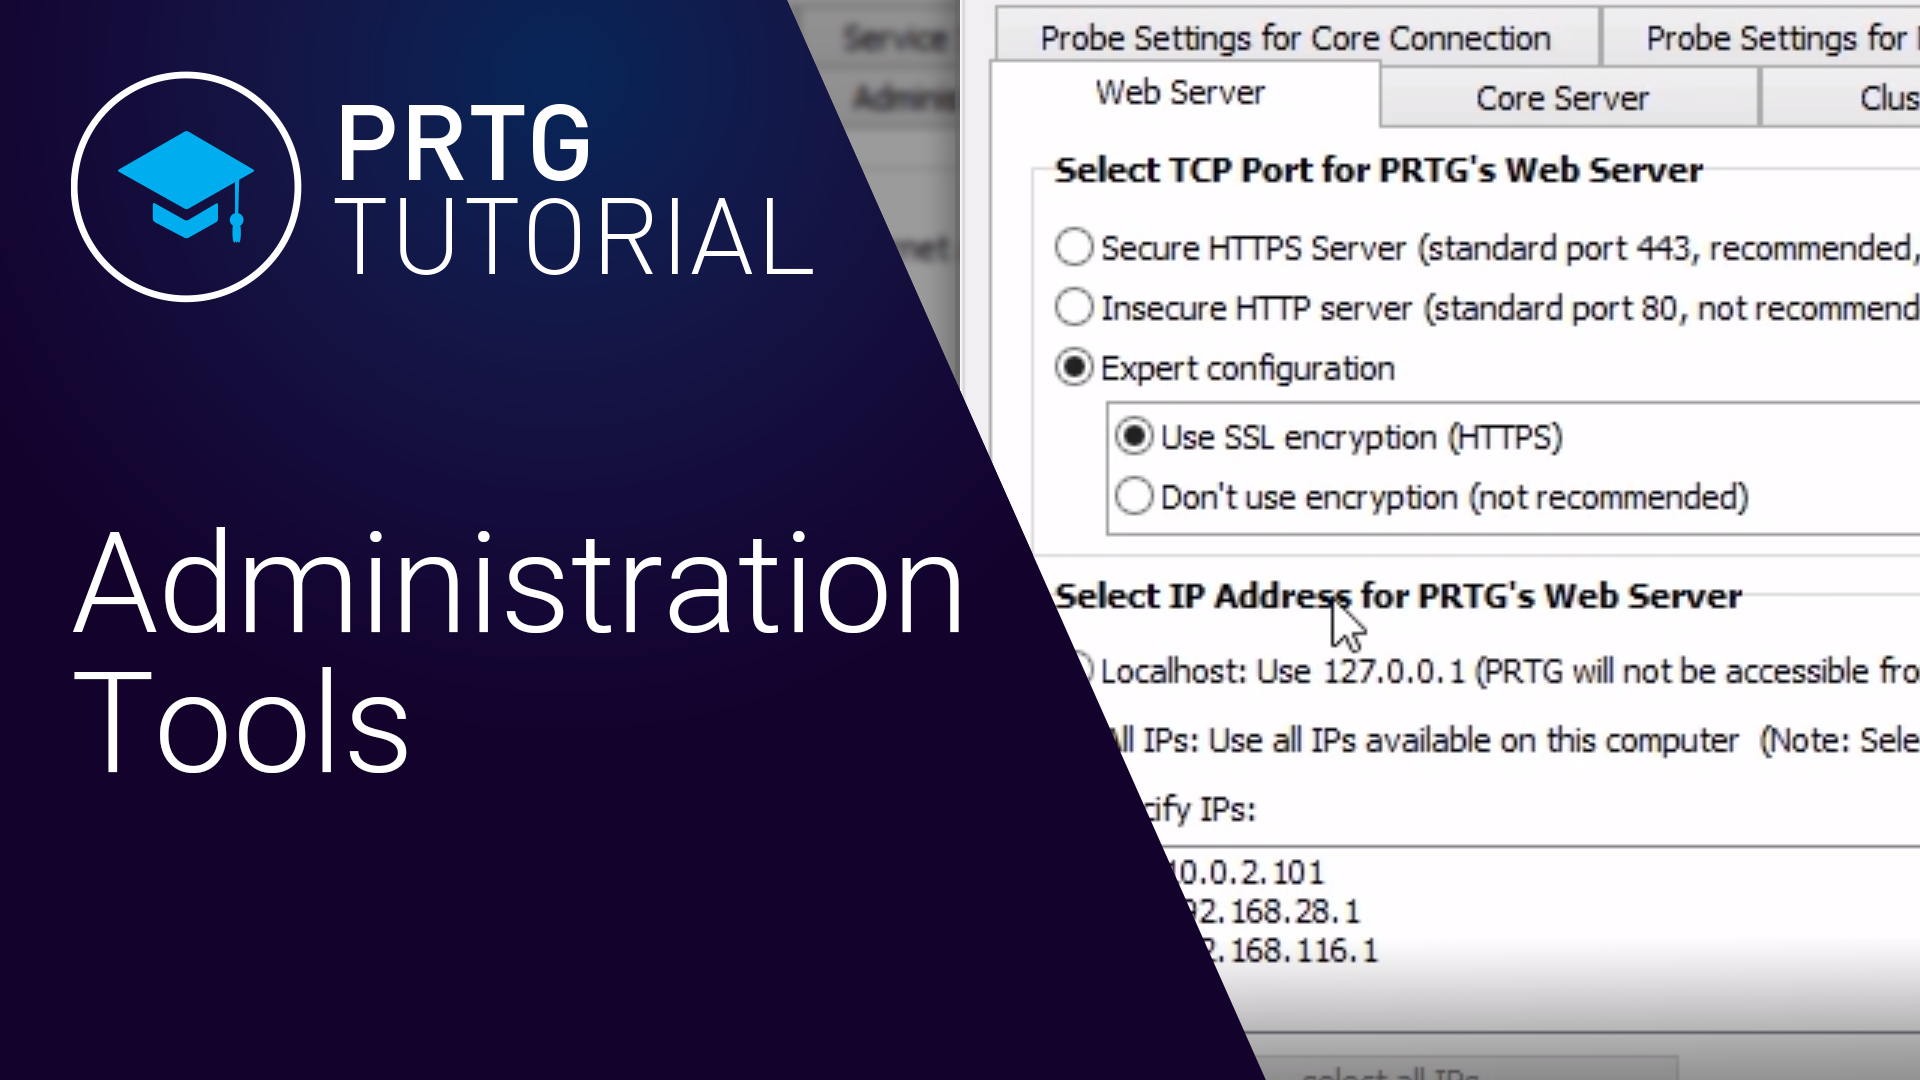 Video: PRTG Administration Tool (Videos, Applications)